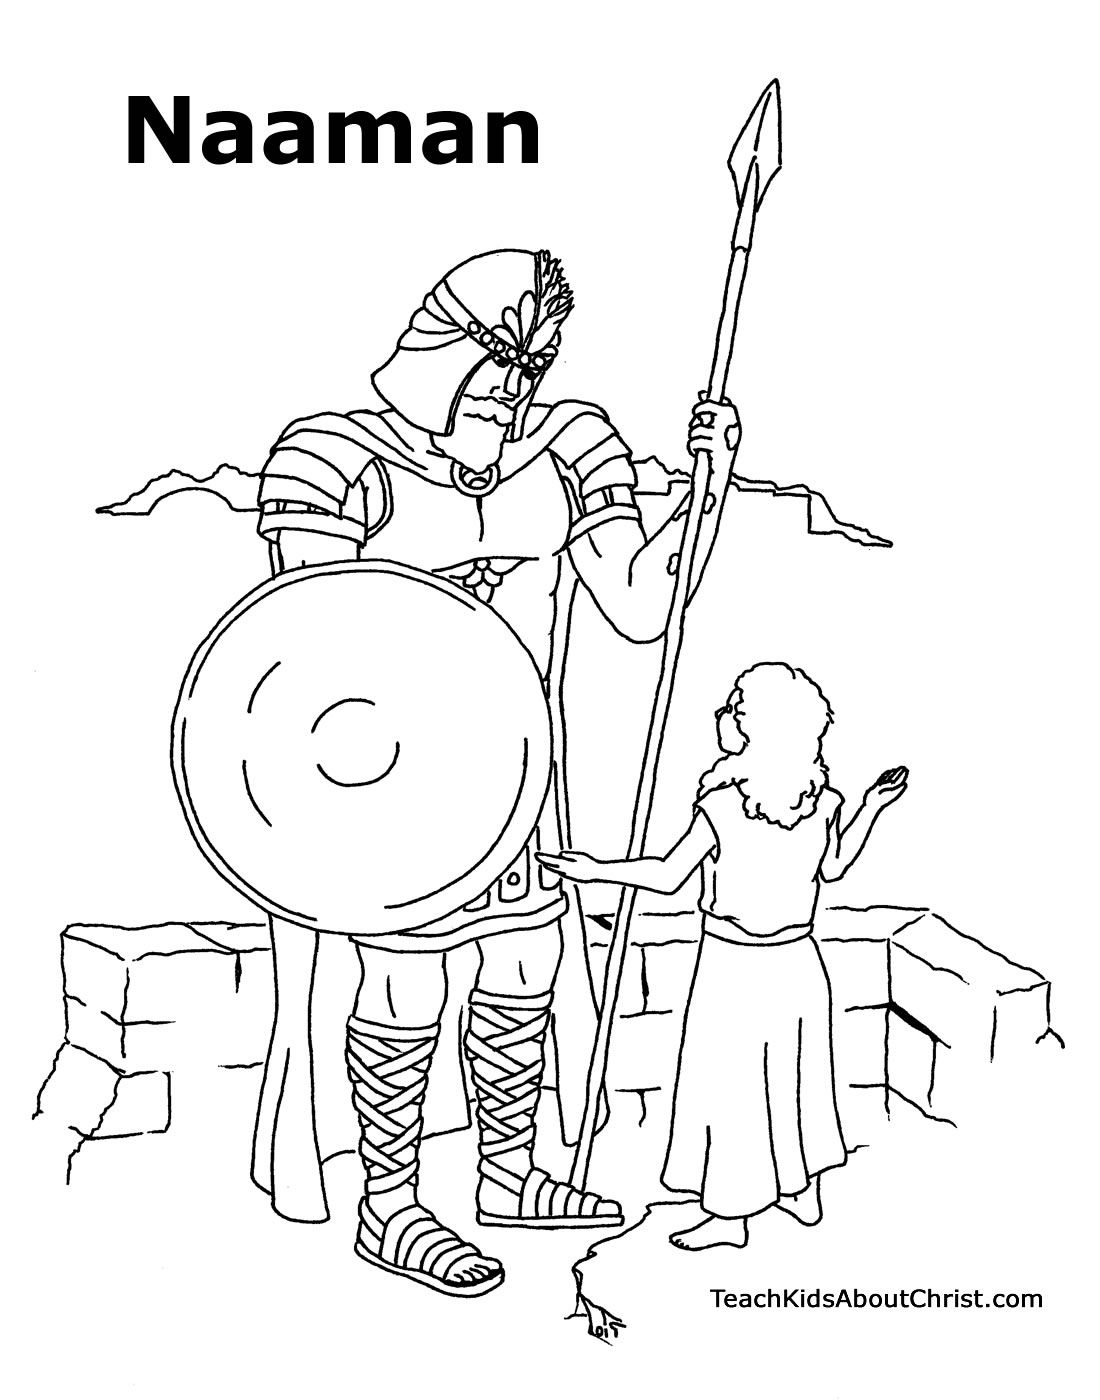 Naaman coloring sheet | Sunday school coloring pages, Sunday ...